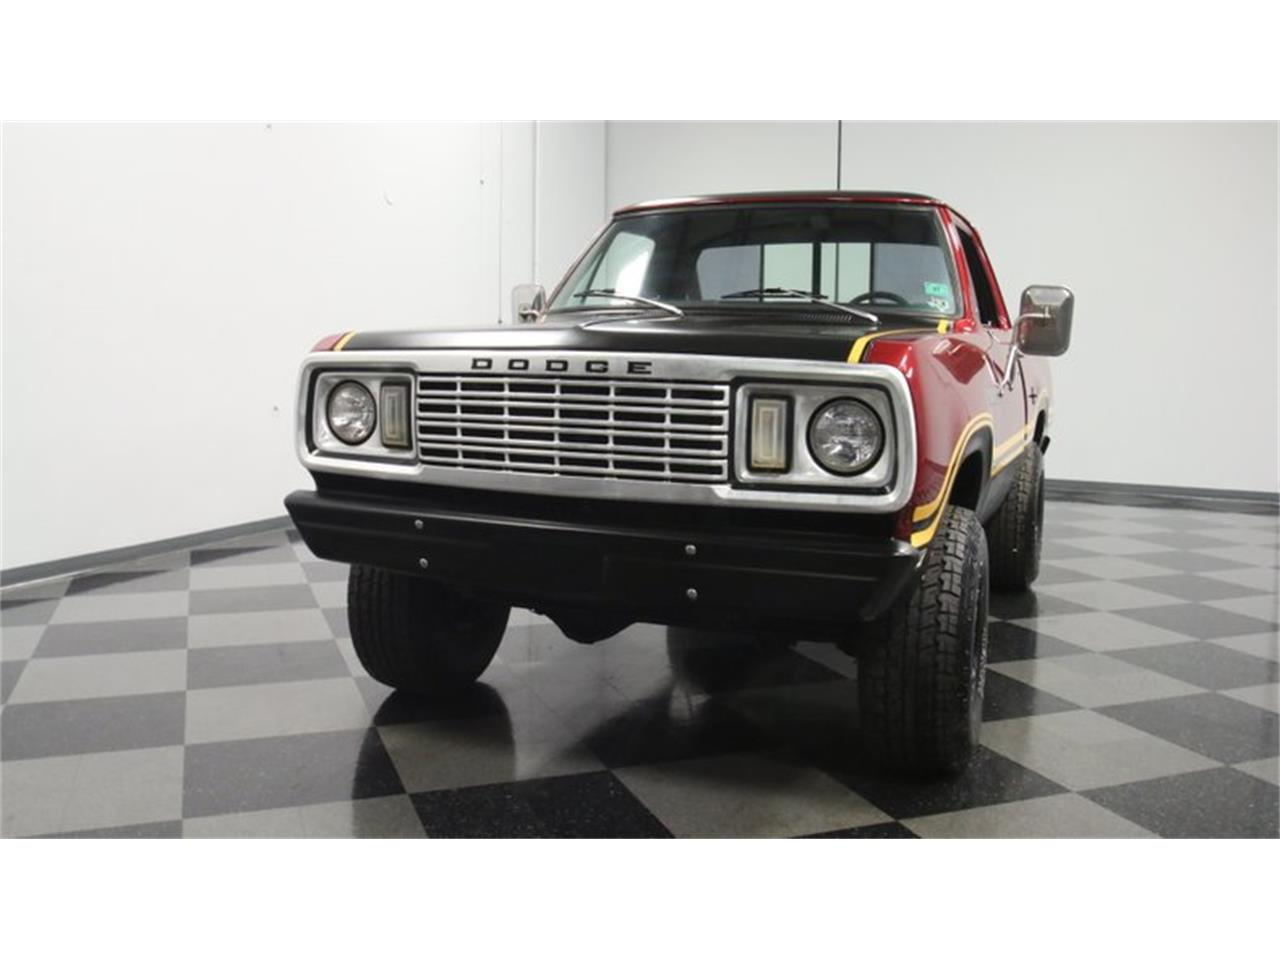 1978 Dodge Power Wagon for sale in Lithia Springs, GA – photo 20